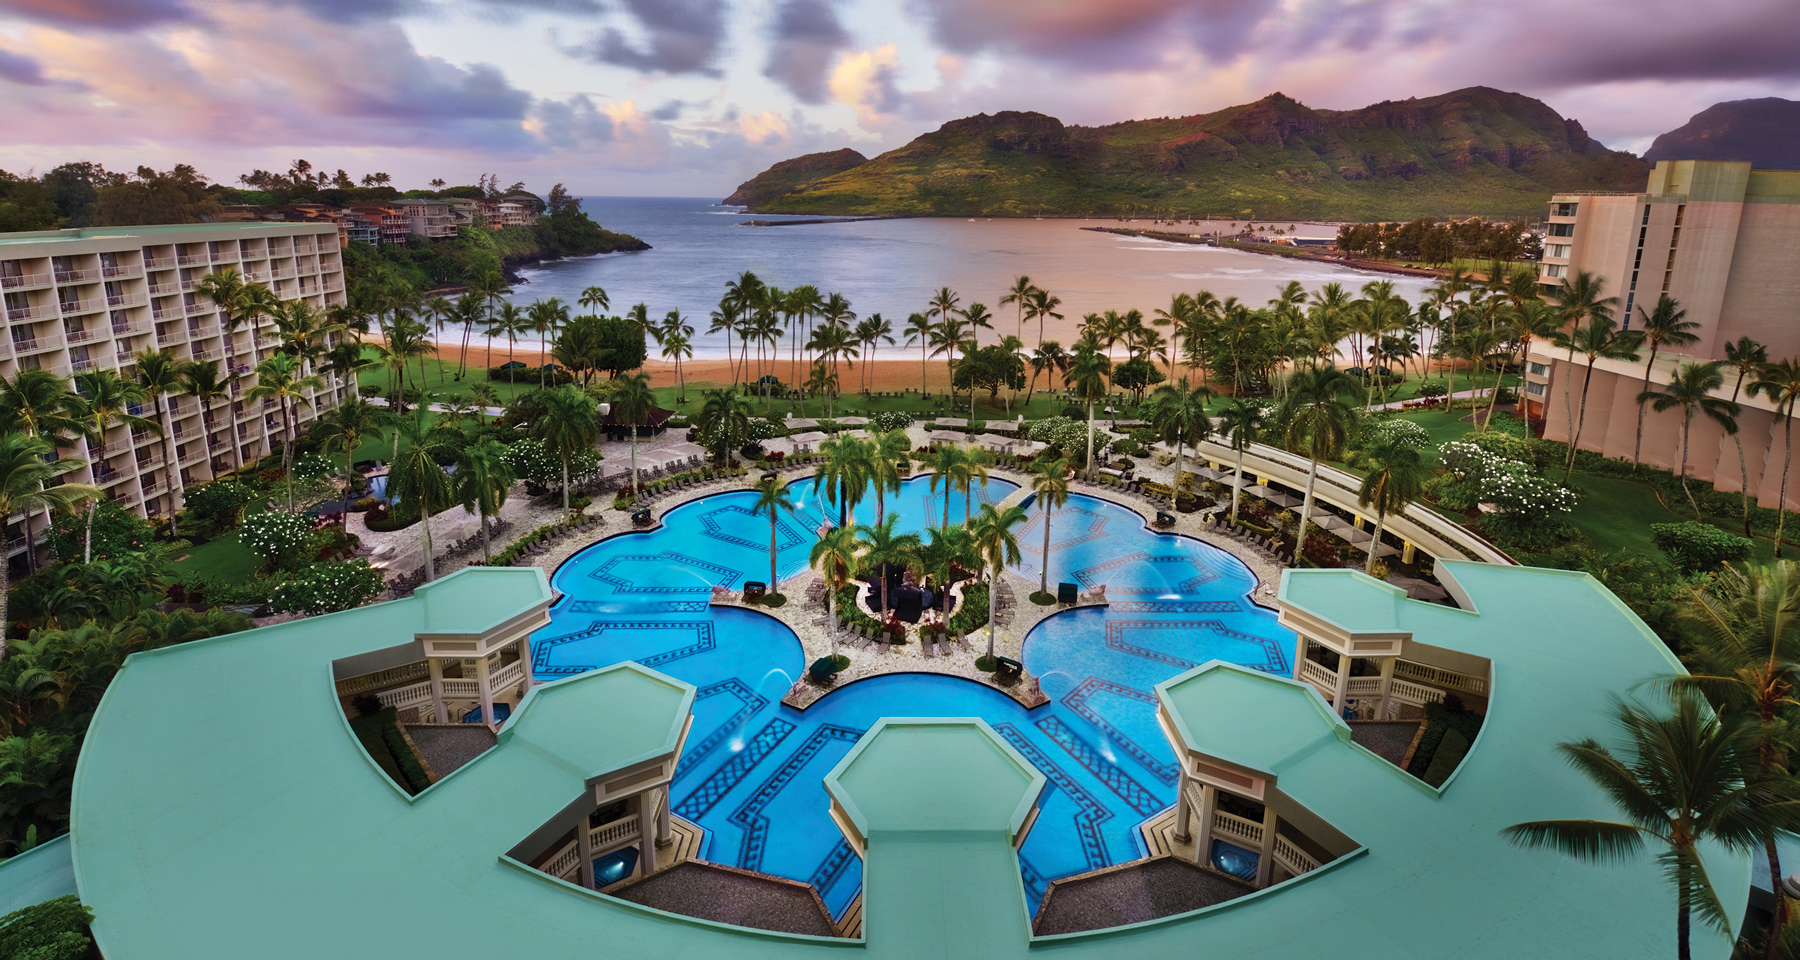 sky view of Marriott's KAUA'I BEACH Club